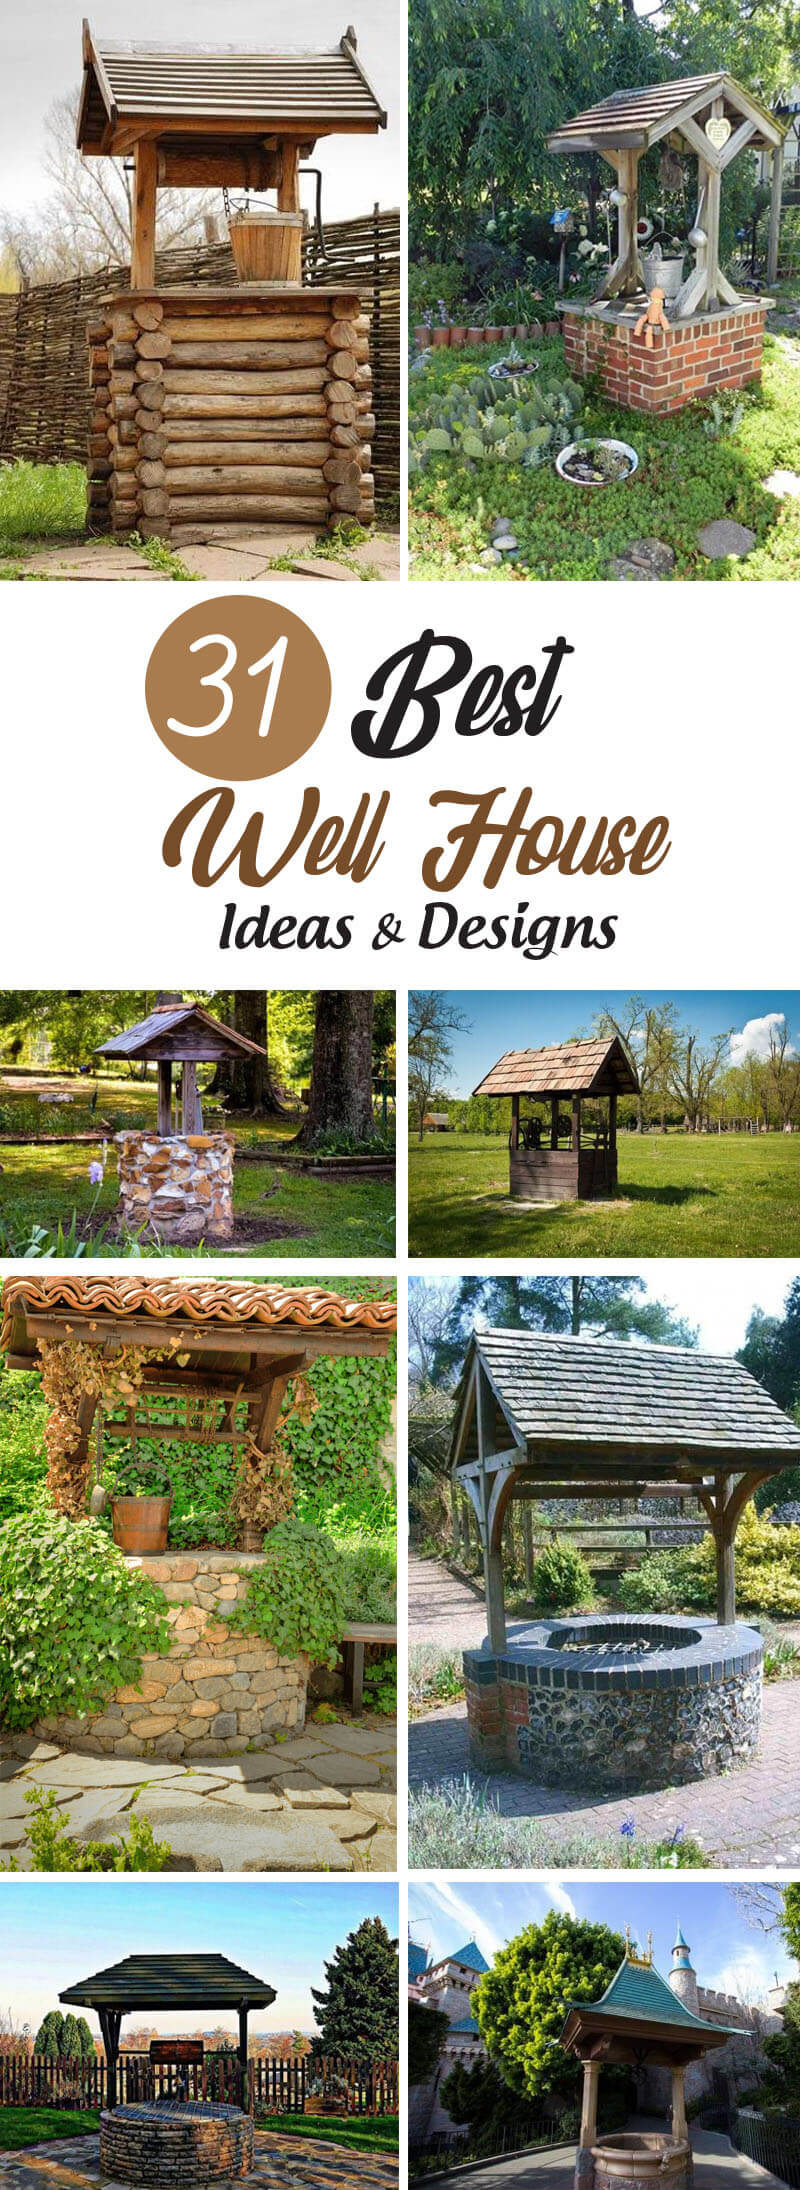 Best Well House Ideas